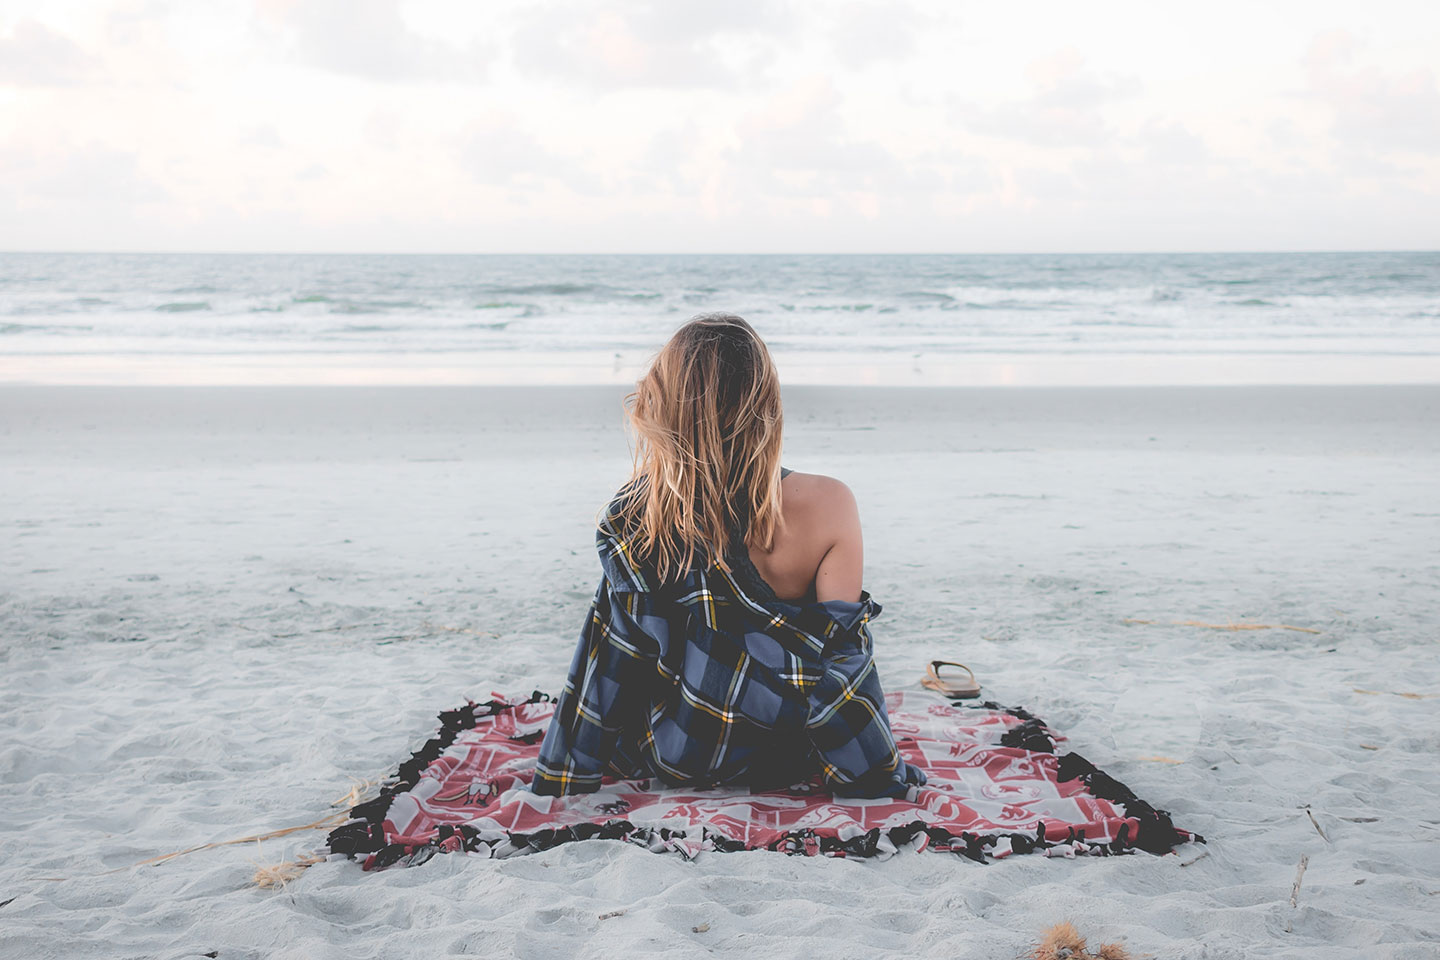 Lady is sitting on a pink blanket at the beach